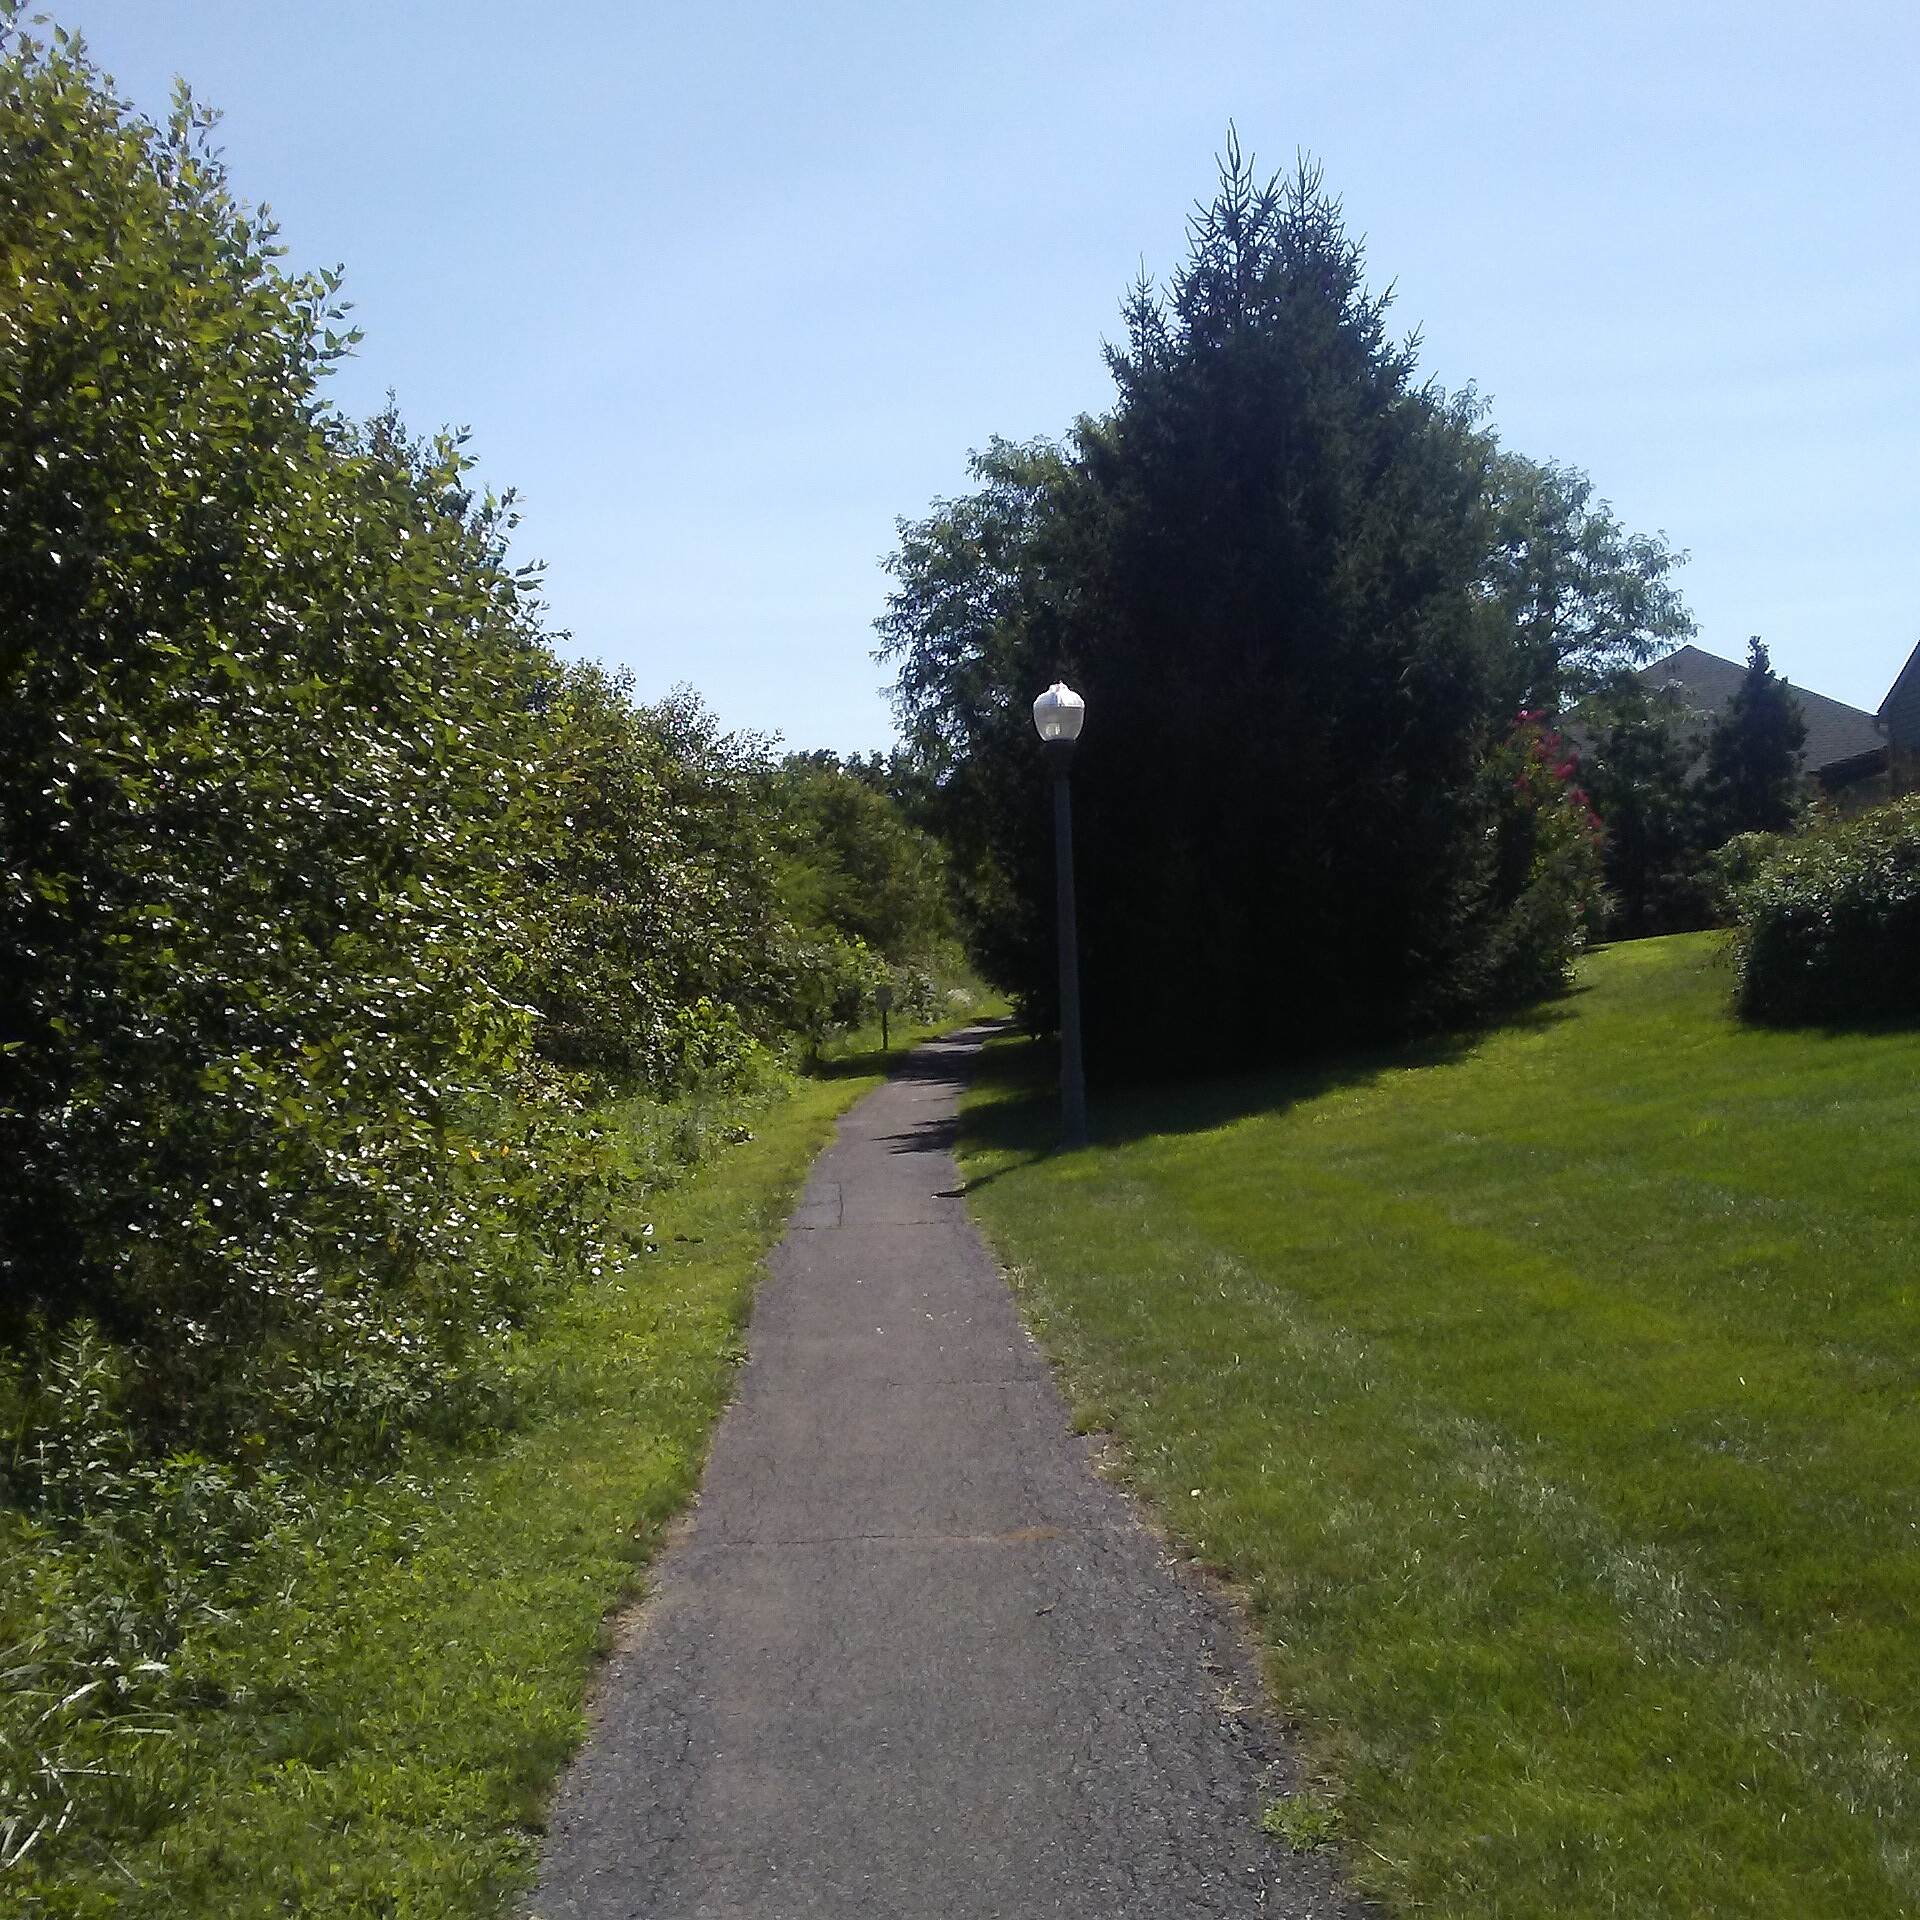 Butterfly Acres Trail Butterfly Acres Trail The trail forms the boundary between the wetlands, seen on left, and residential properties, seen on right, for most of its length.